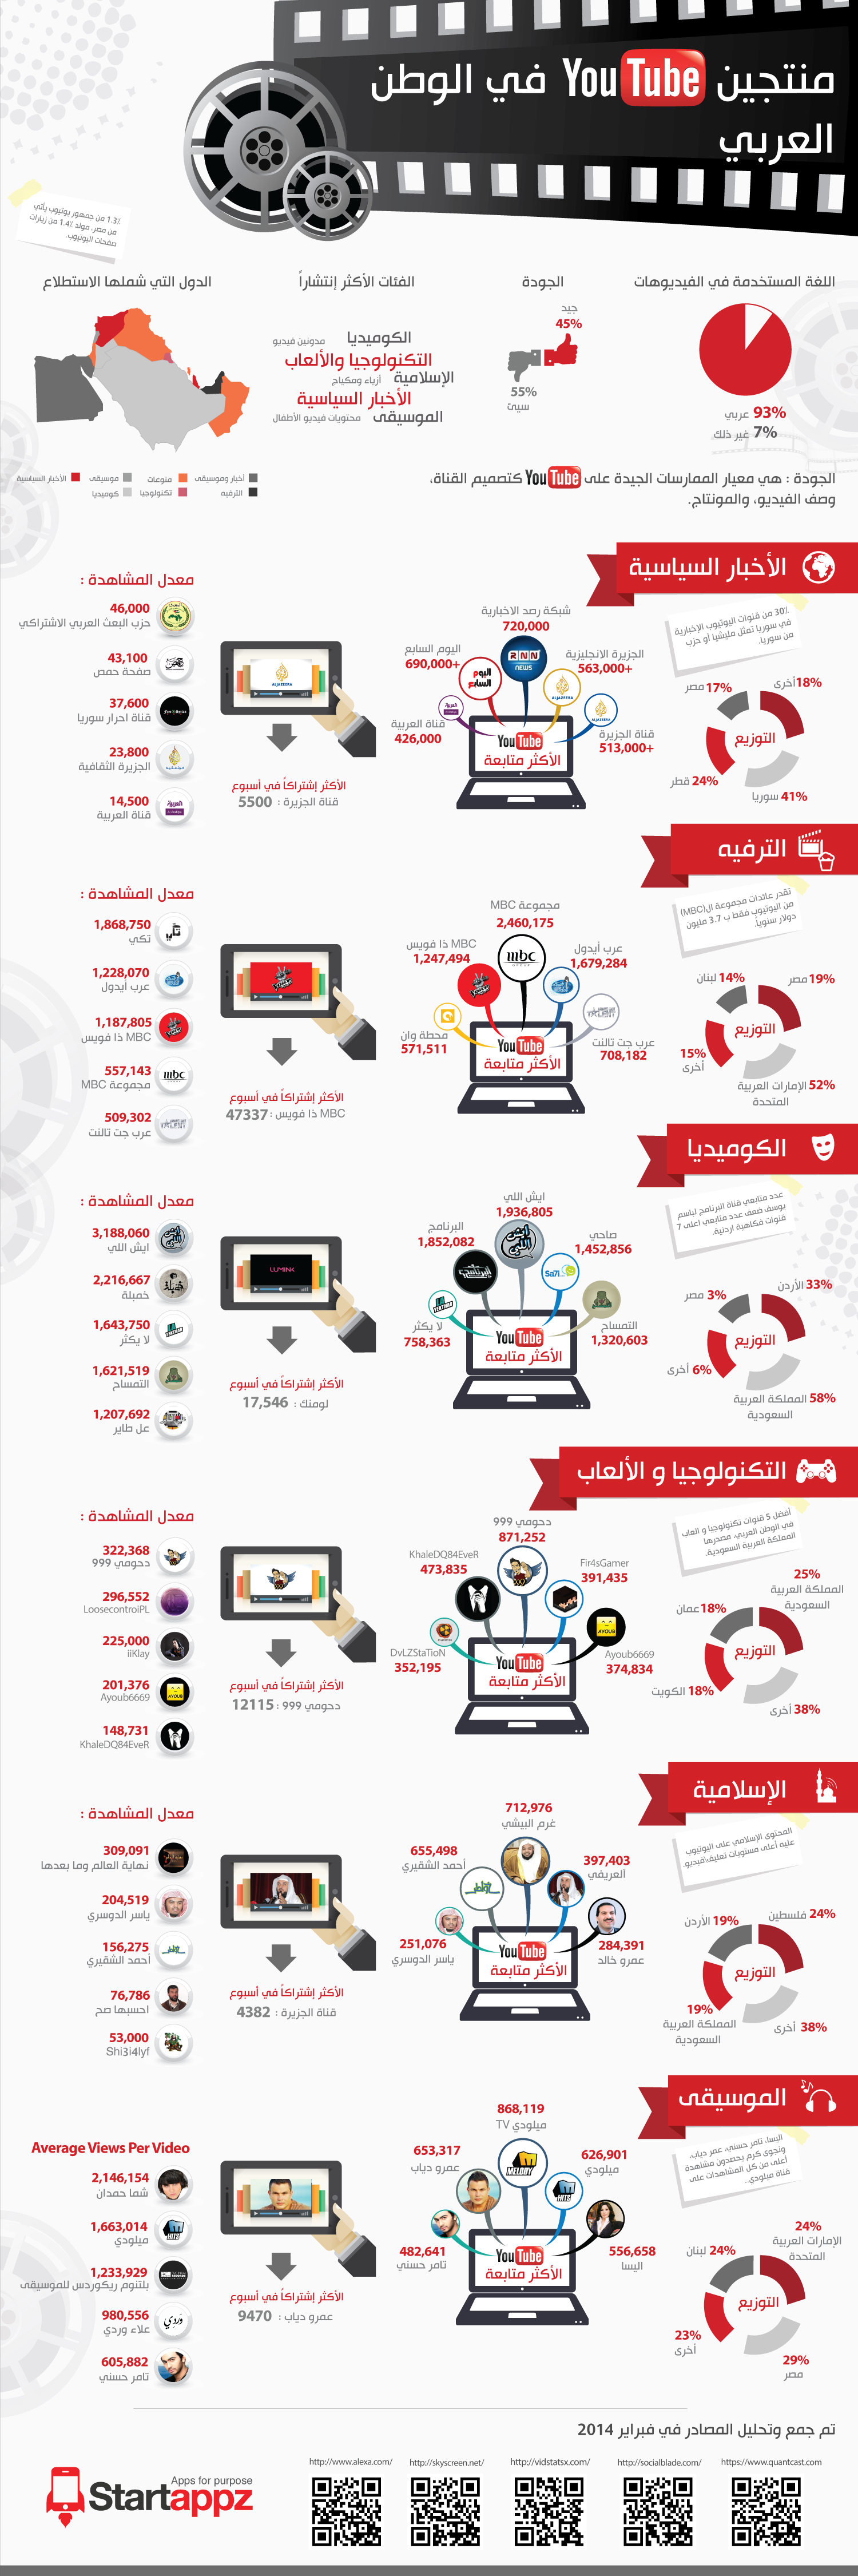 Youtube-infographic_ARABIC-1